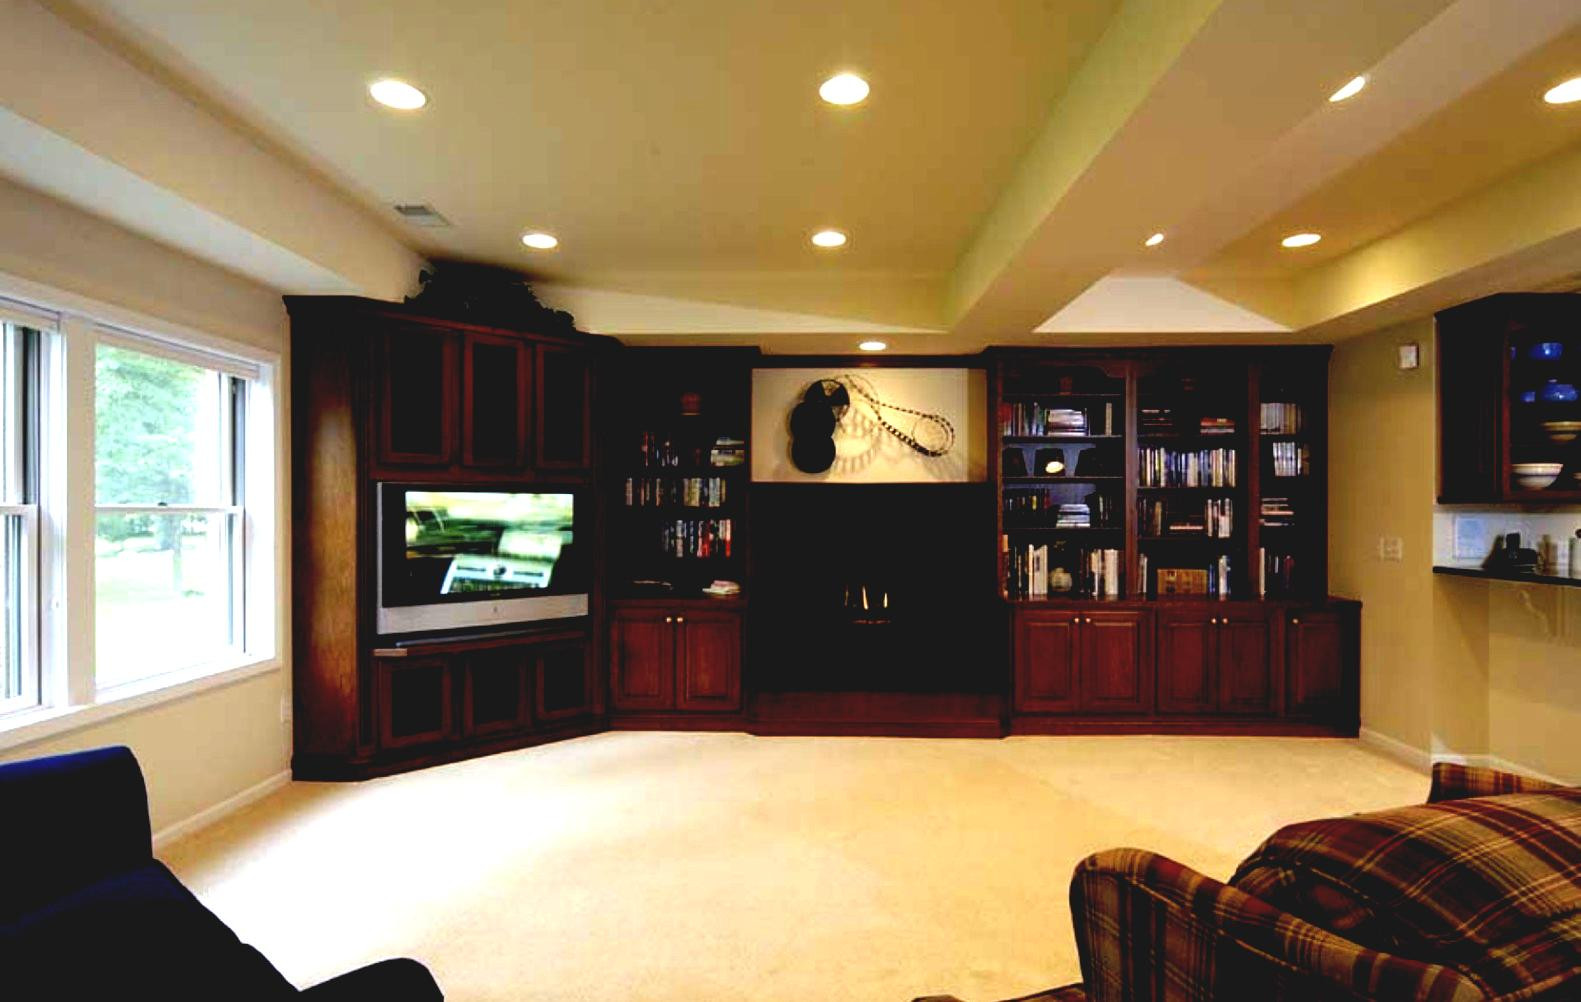 Best ideas about Unfinished Basement Decorating Ideas . Save or Pin Best Choice To Decorate Unfinished Basement With Cool Now.